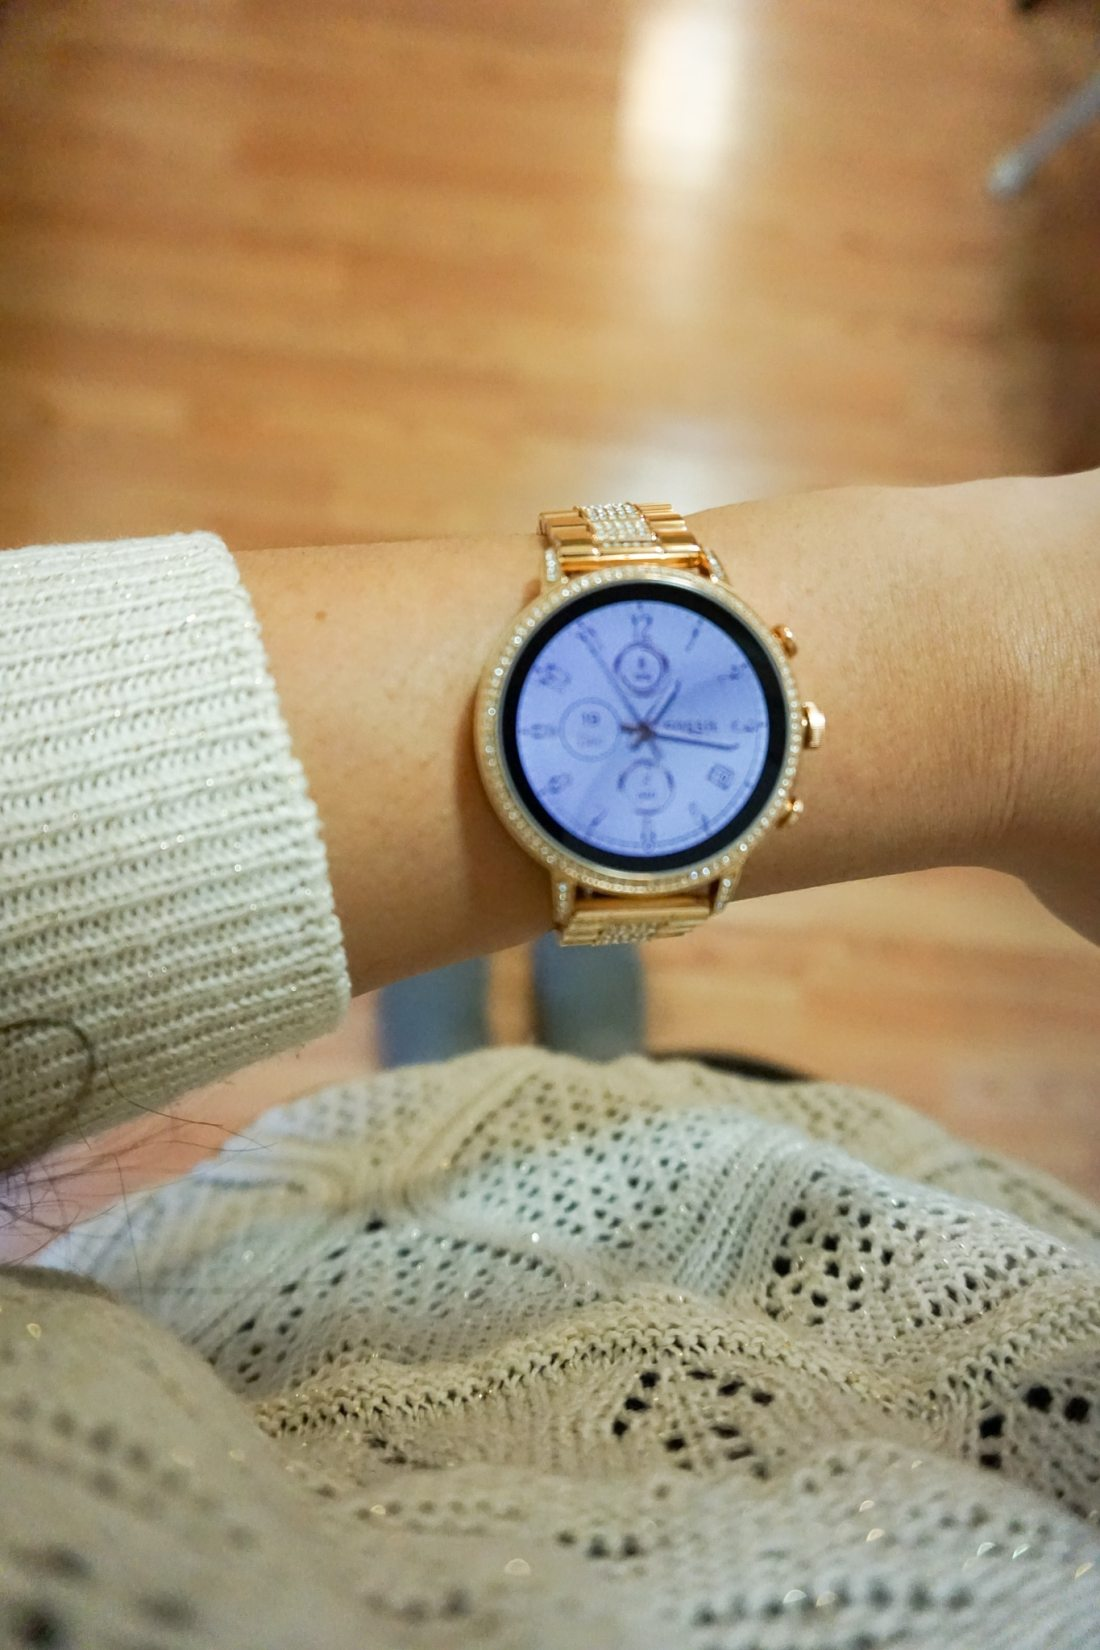 Fossil - Gen 4 Venture HR Smartwatch Being Worn. The Women's Fossil - Gen 4 Venture HR Smartwatch is the best assistant you never knew you hired. Enjoy the touch screen plus special features.